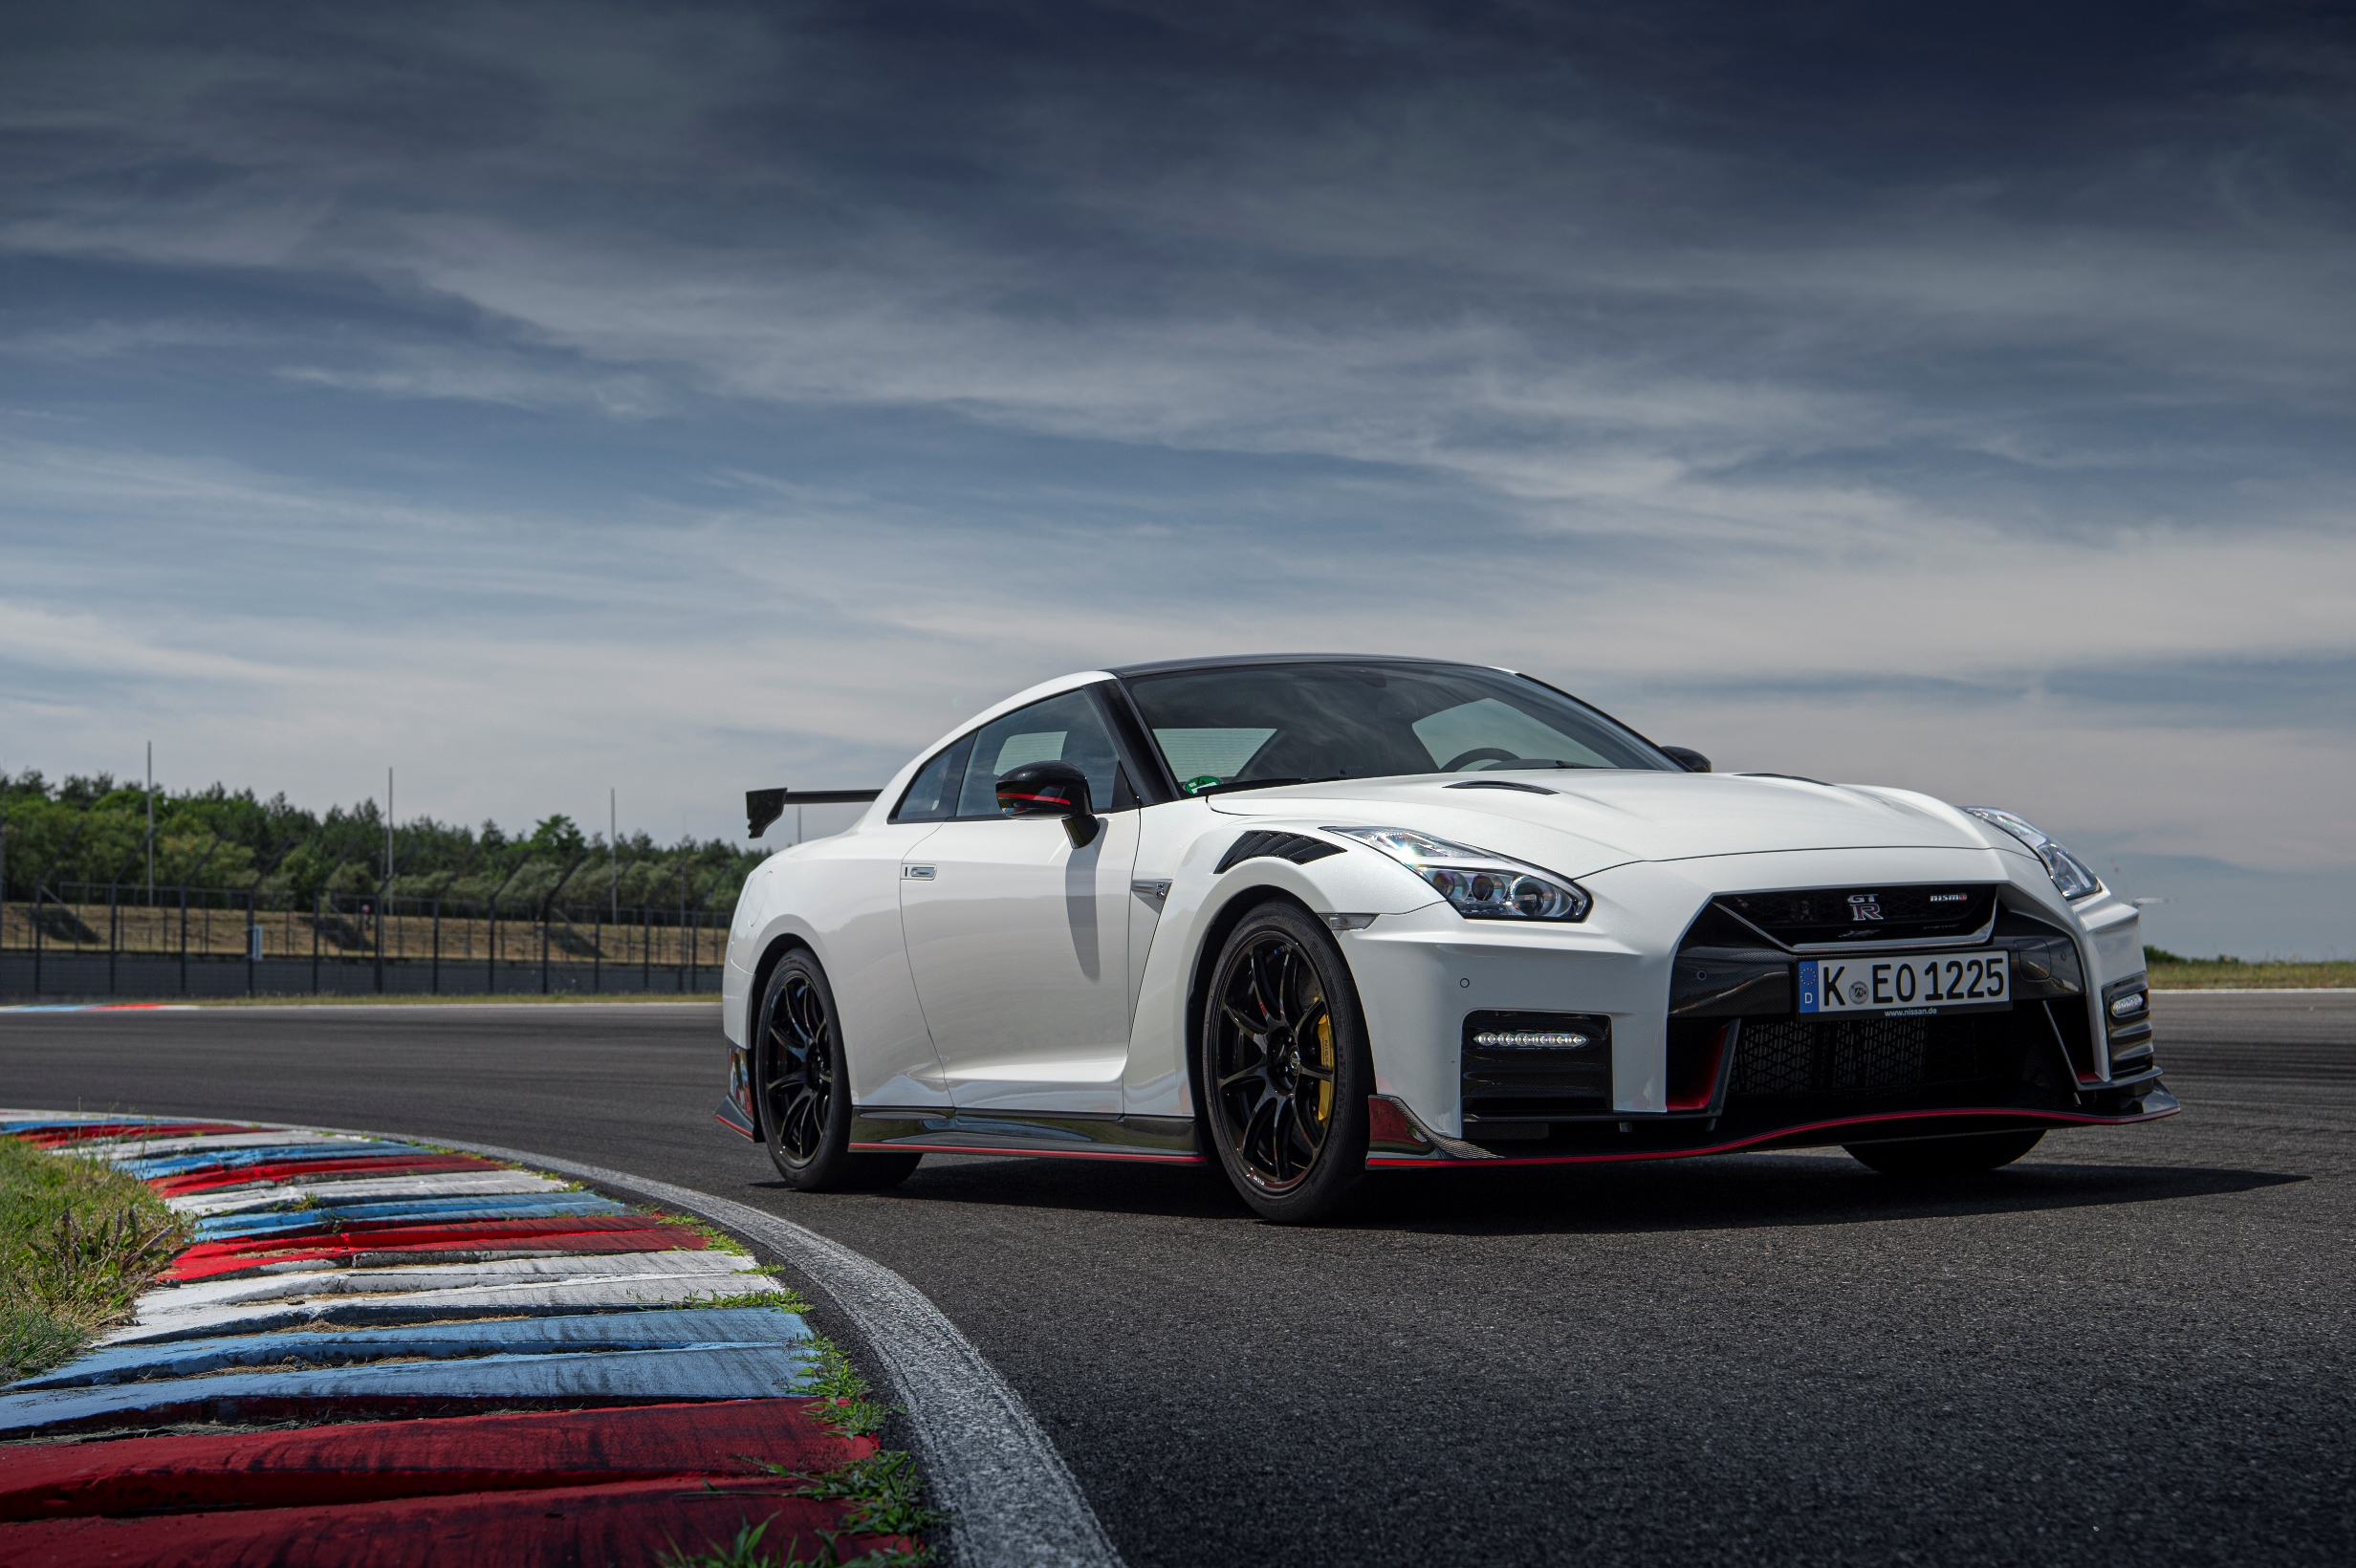 2021 nissan gt-r price list revealed, only two trim levels